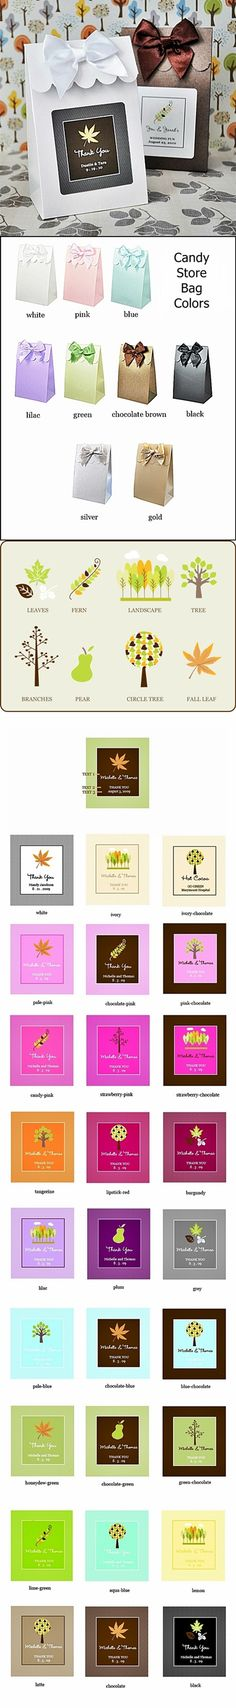 Stylish Autumn-Themed Personalized Candy-Store Bags (Set of 12)